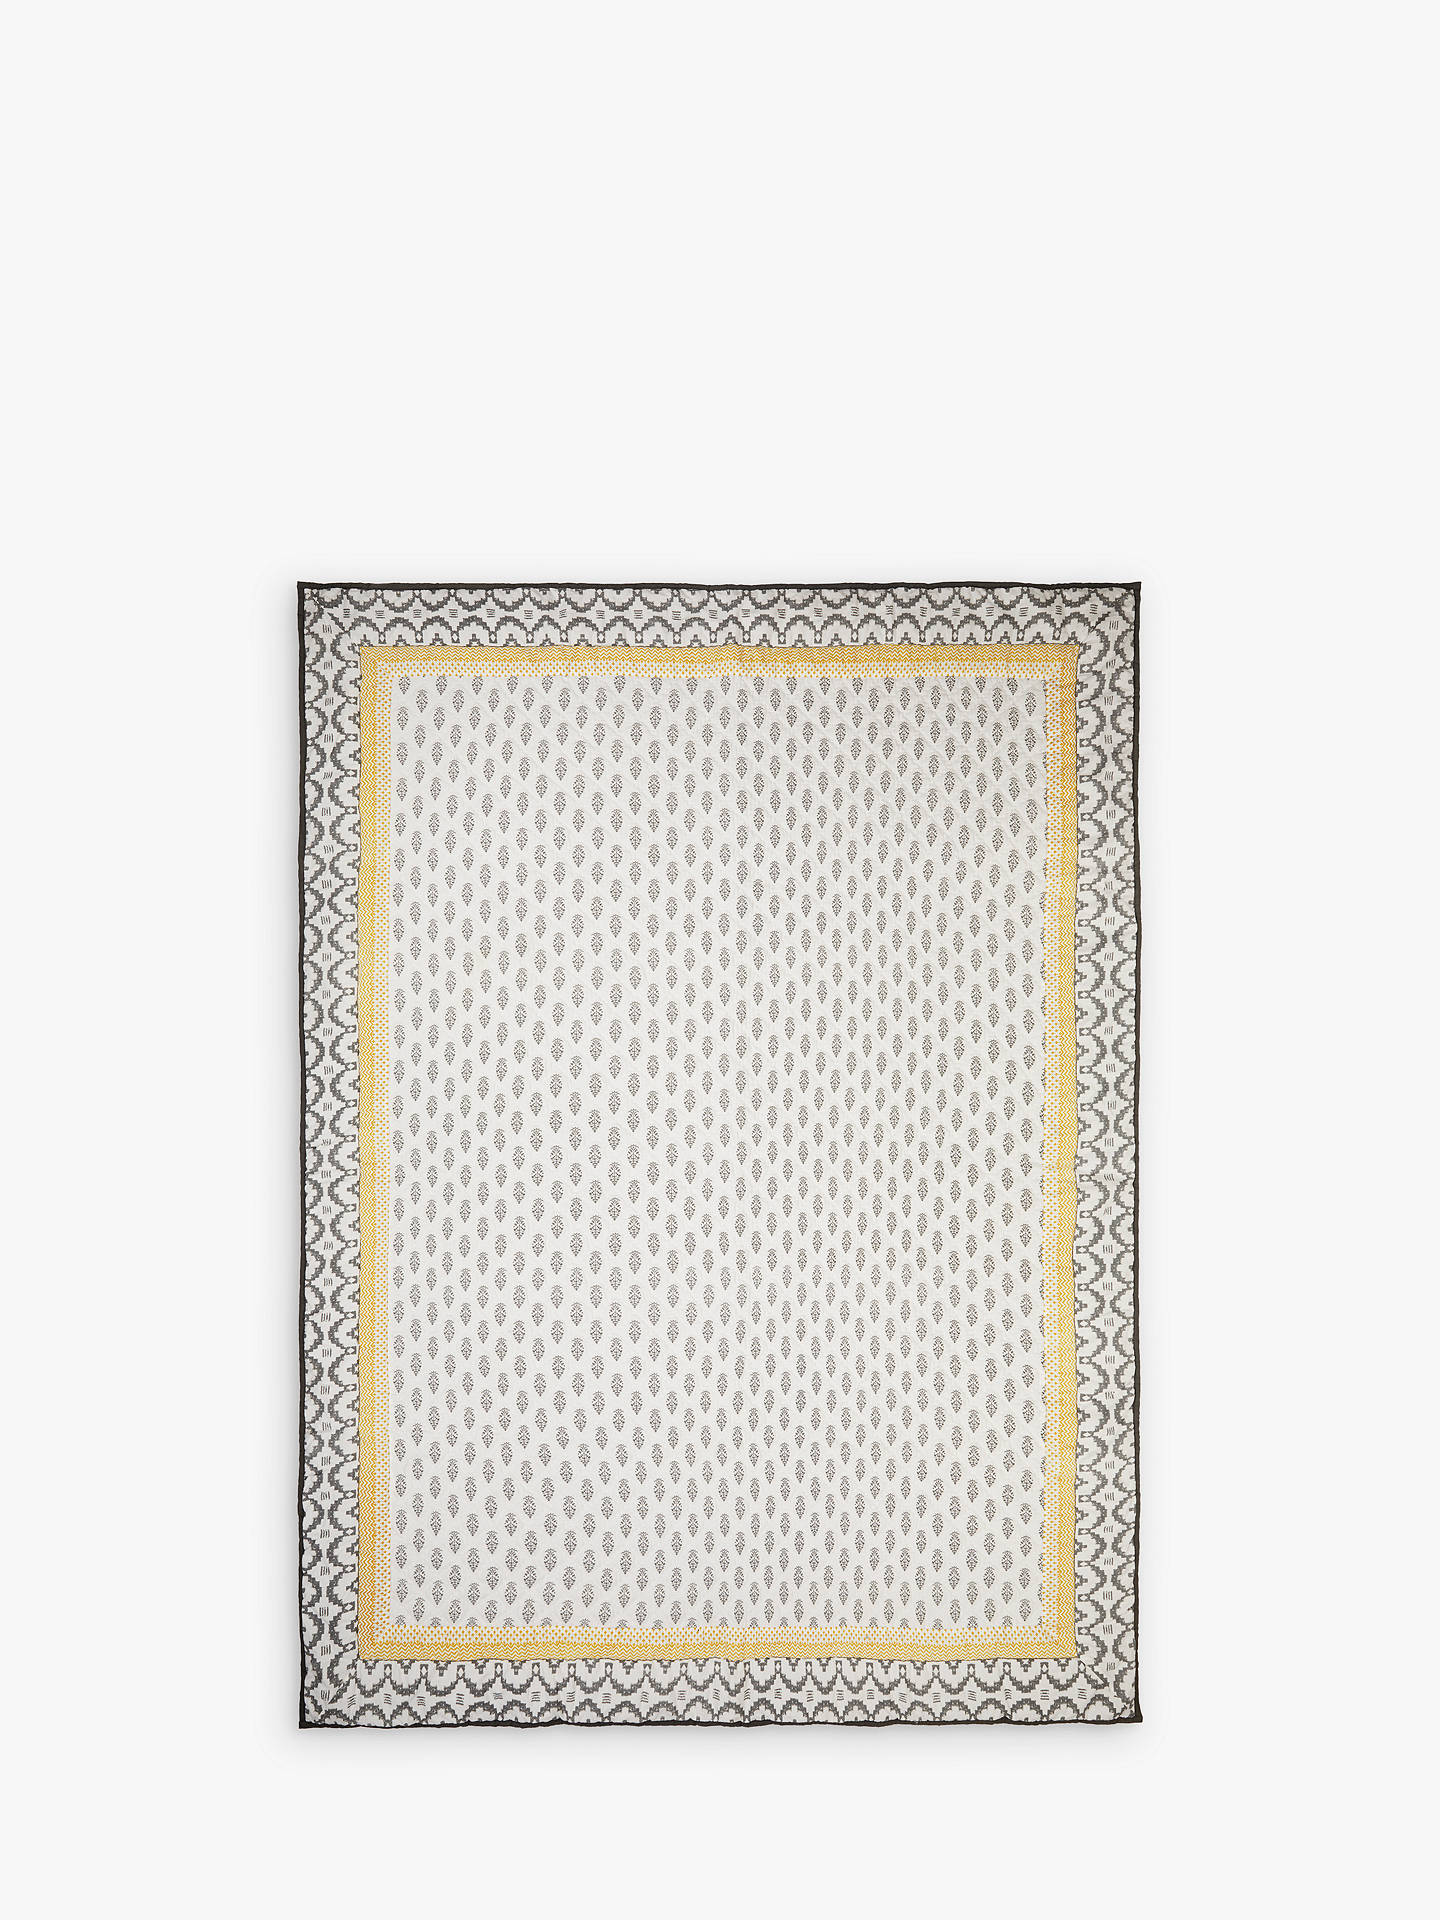 BuyJohn Lewis & Partners Fusion Orchha Quilted Bedspread, Saffron / Grey Online at johnlewis.com